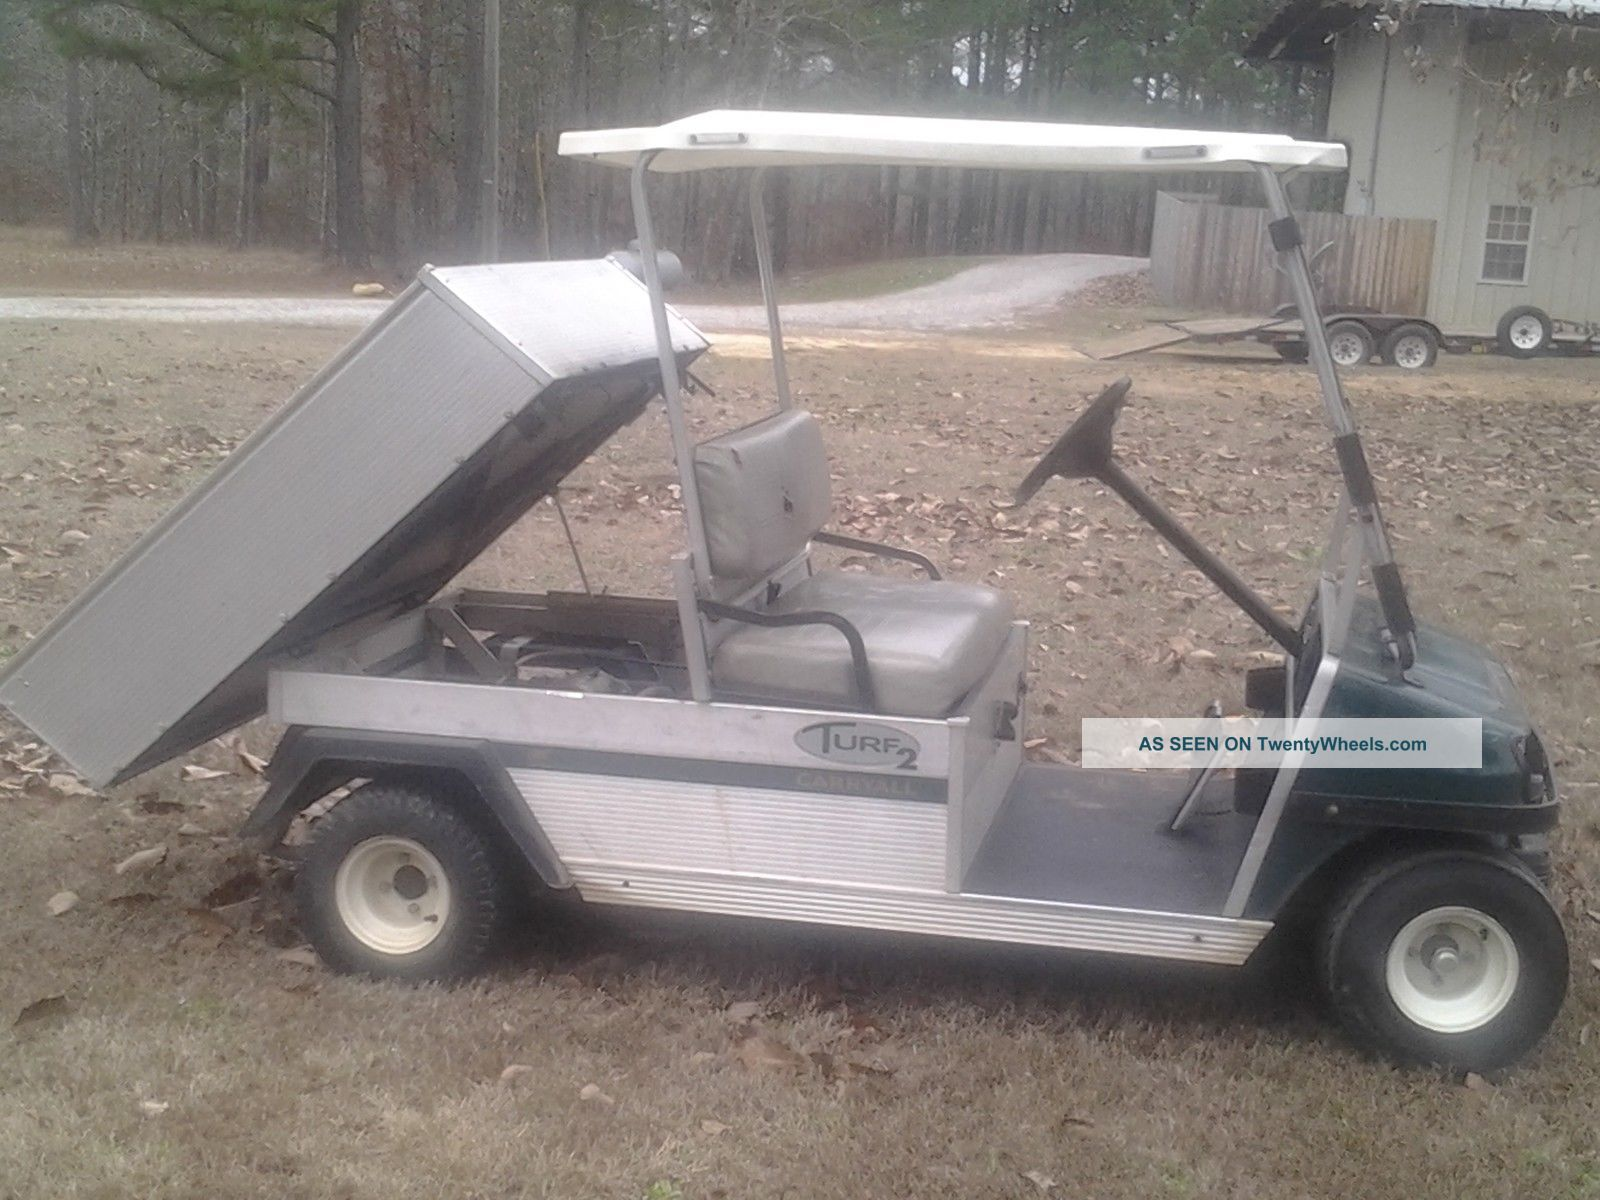 Diy Mower Dump Cart besides Northwood Rvs For Sale In Nokomis Florida in addition ka railers co also Trailer Drawing additionally Ez Dumper Trailer Wiring Diagram. on golf cart dump trailers